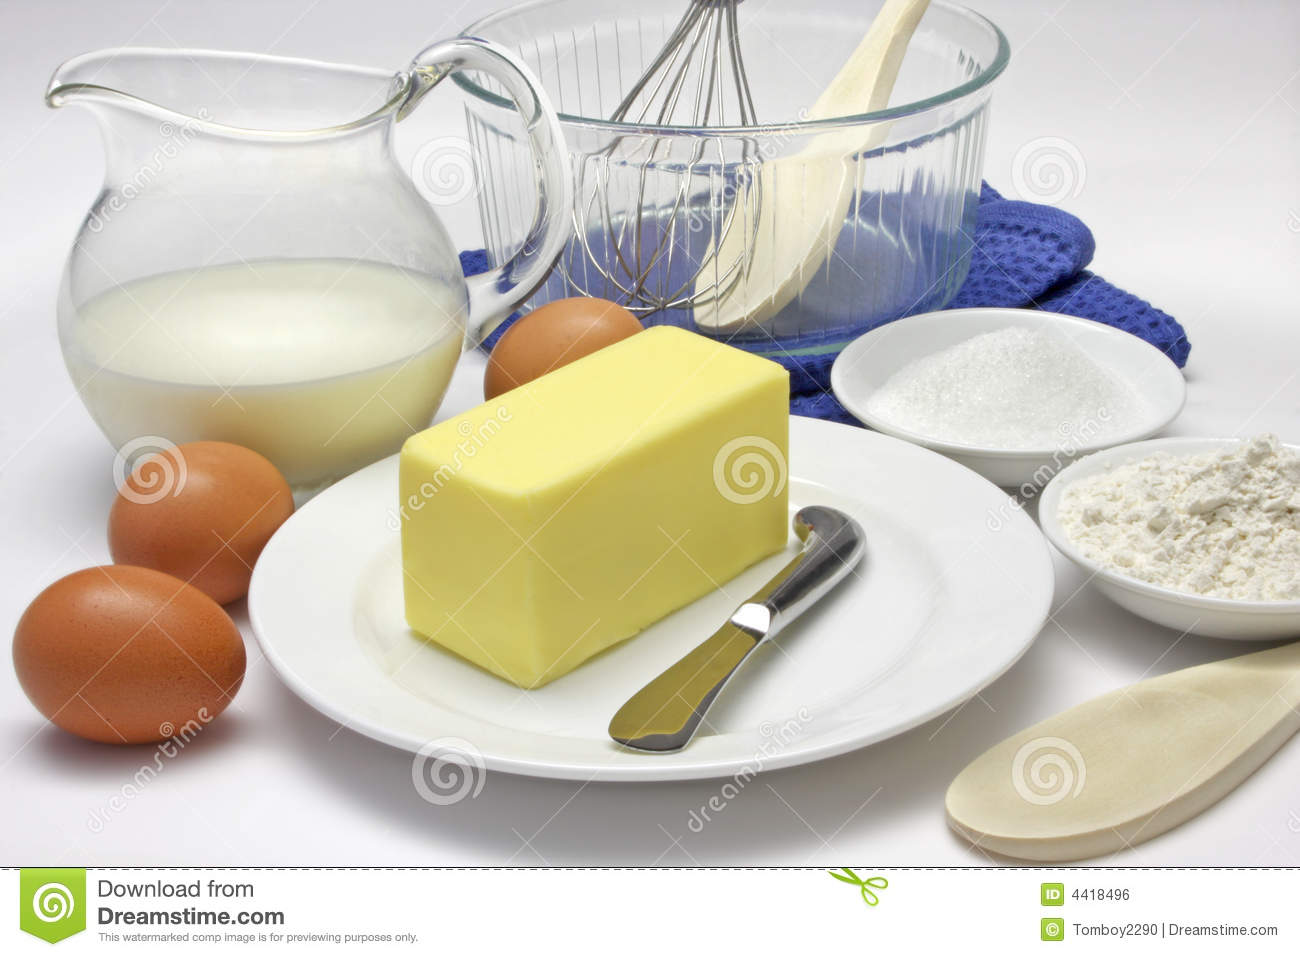 Cake ingredients royalty free stock image image 4418496 for What are the ingredients to make a cake